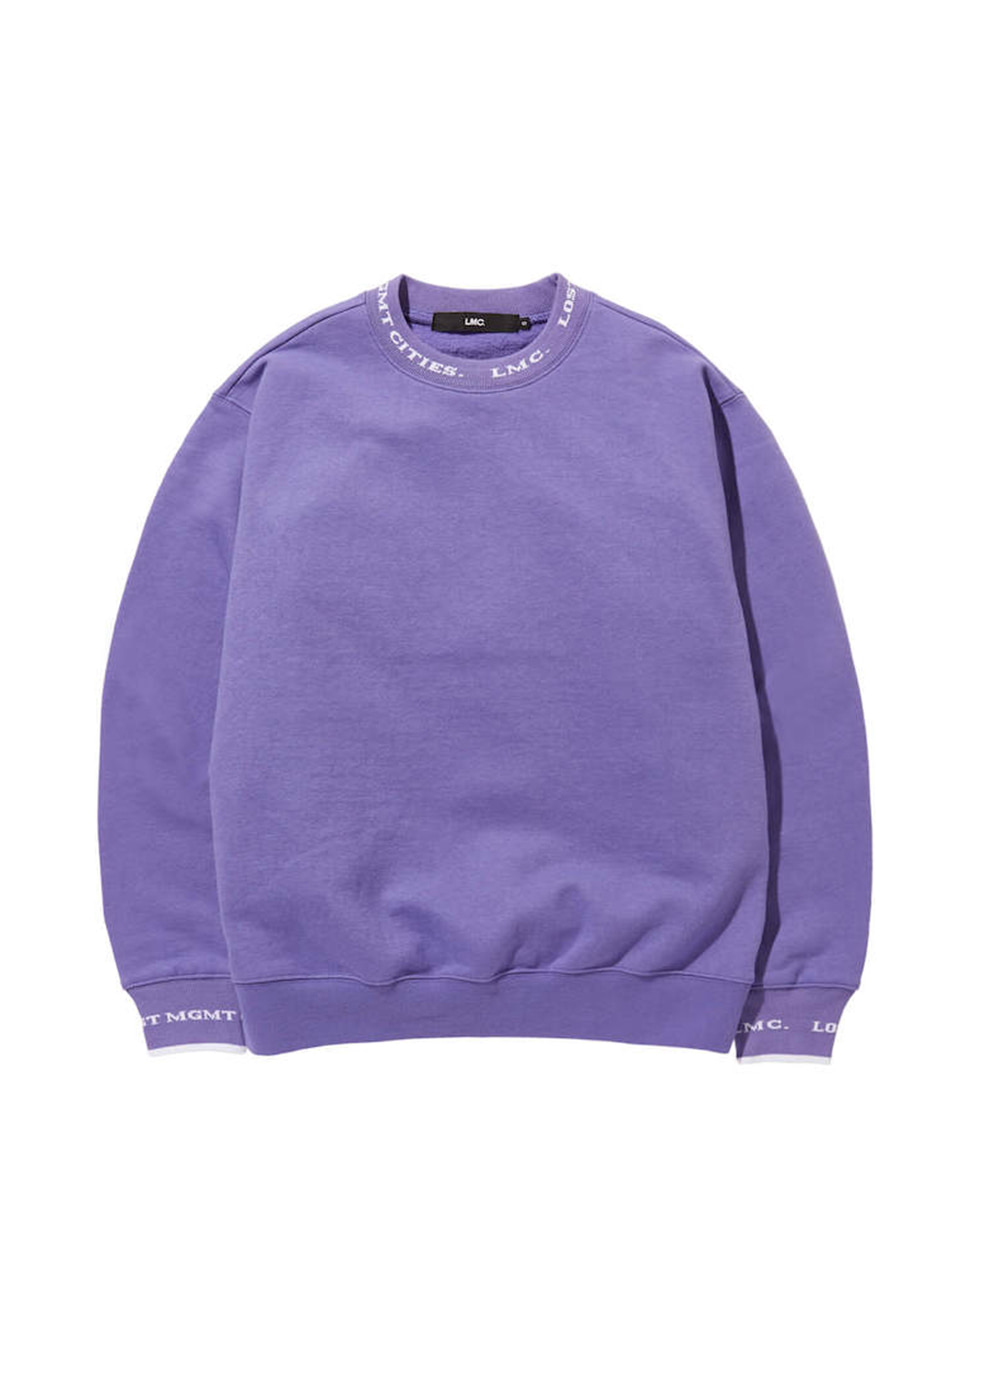 LMC LOGO JACQUARD BAND SWEATSHIRT purple